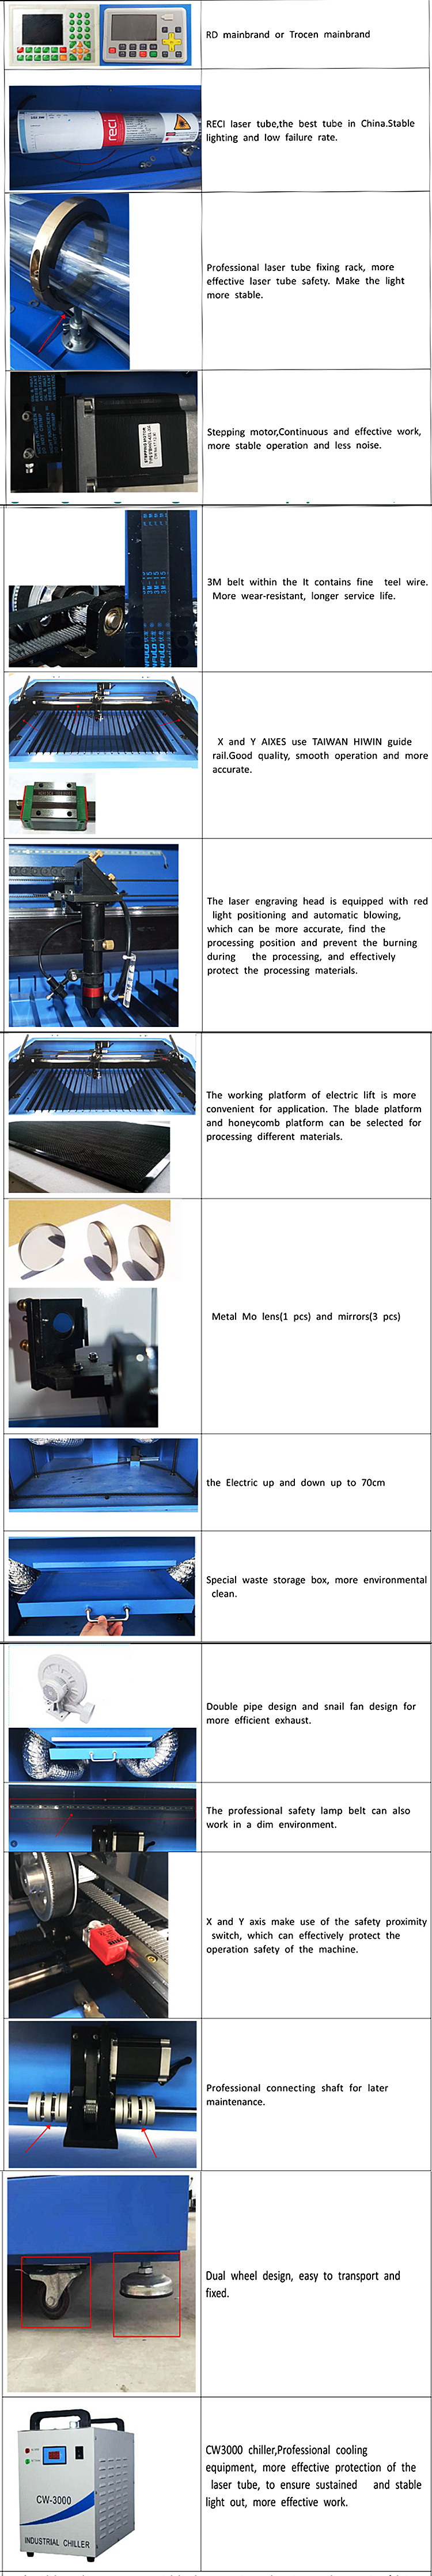 6090 Laser Marking/Cutting/Engraving Machine for Wood/Bamboo/Veneer/MDF/Wood/Plywood